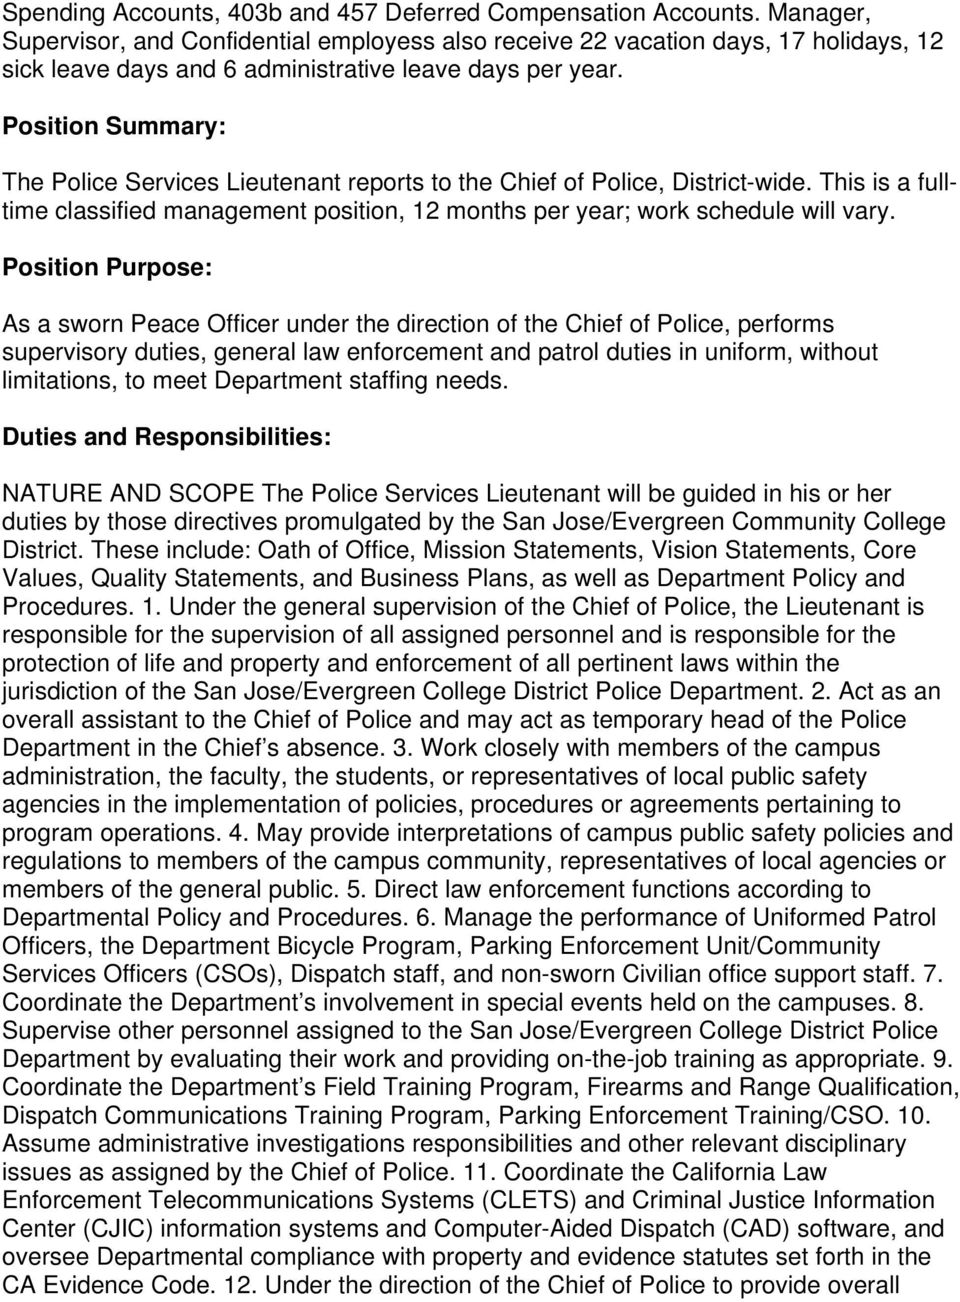 Position Summary: The Police Services Lieutenant reports to the Chief of Police, District-wide. This is a fulltime classified management position, 12 months per year; work schedule will vary.